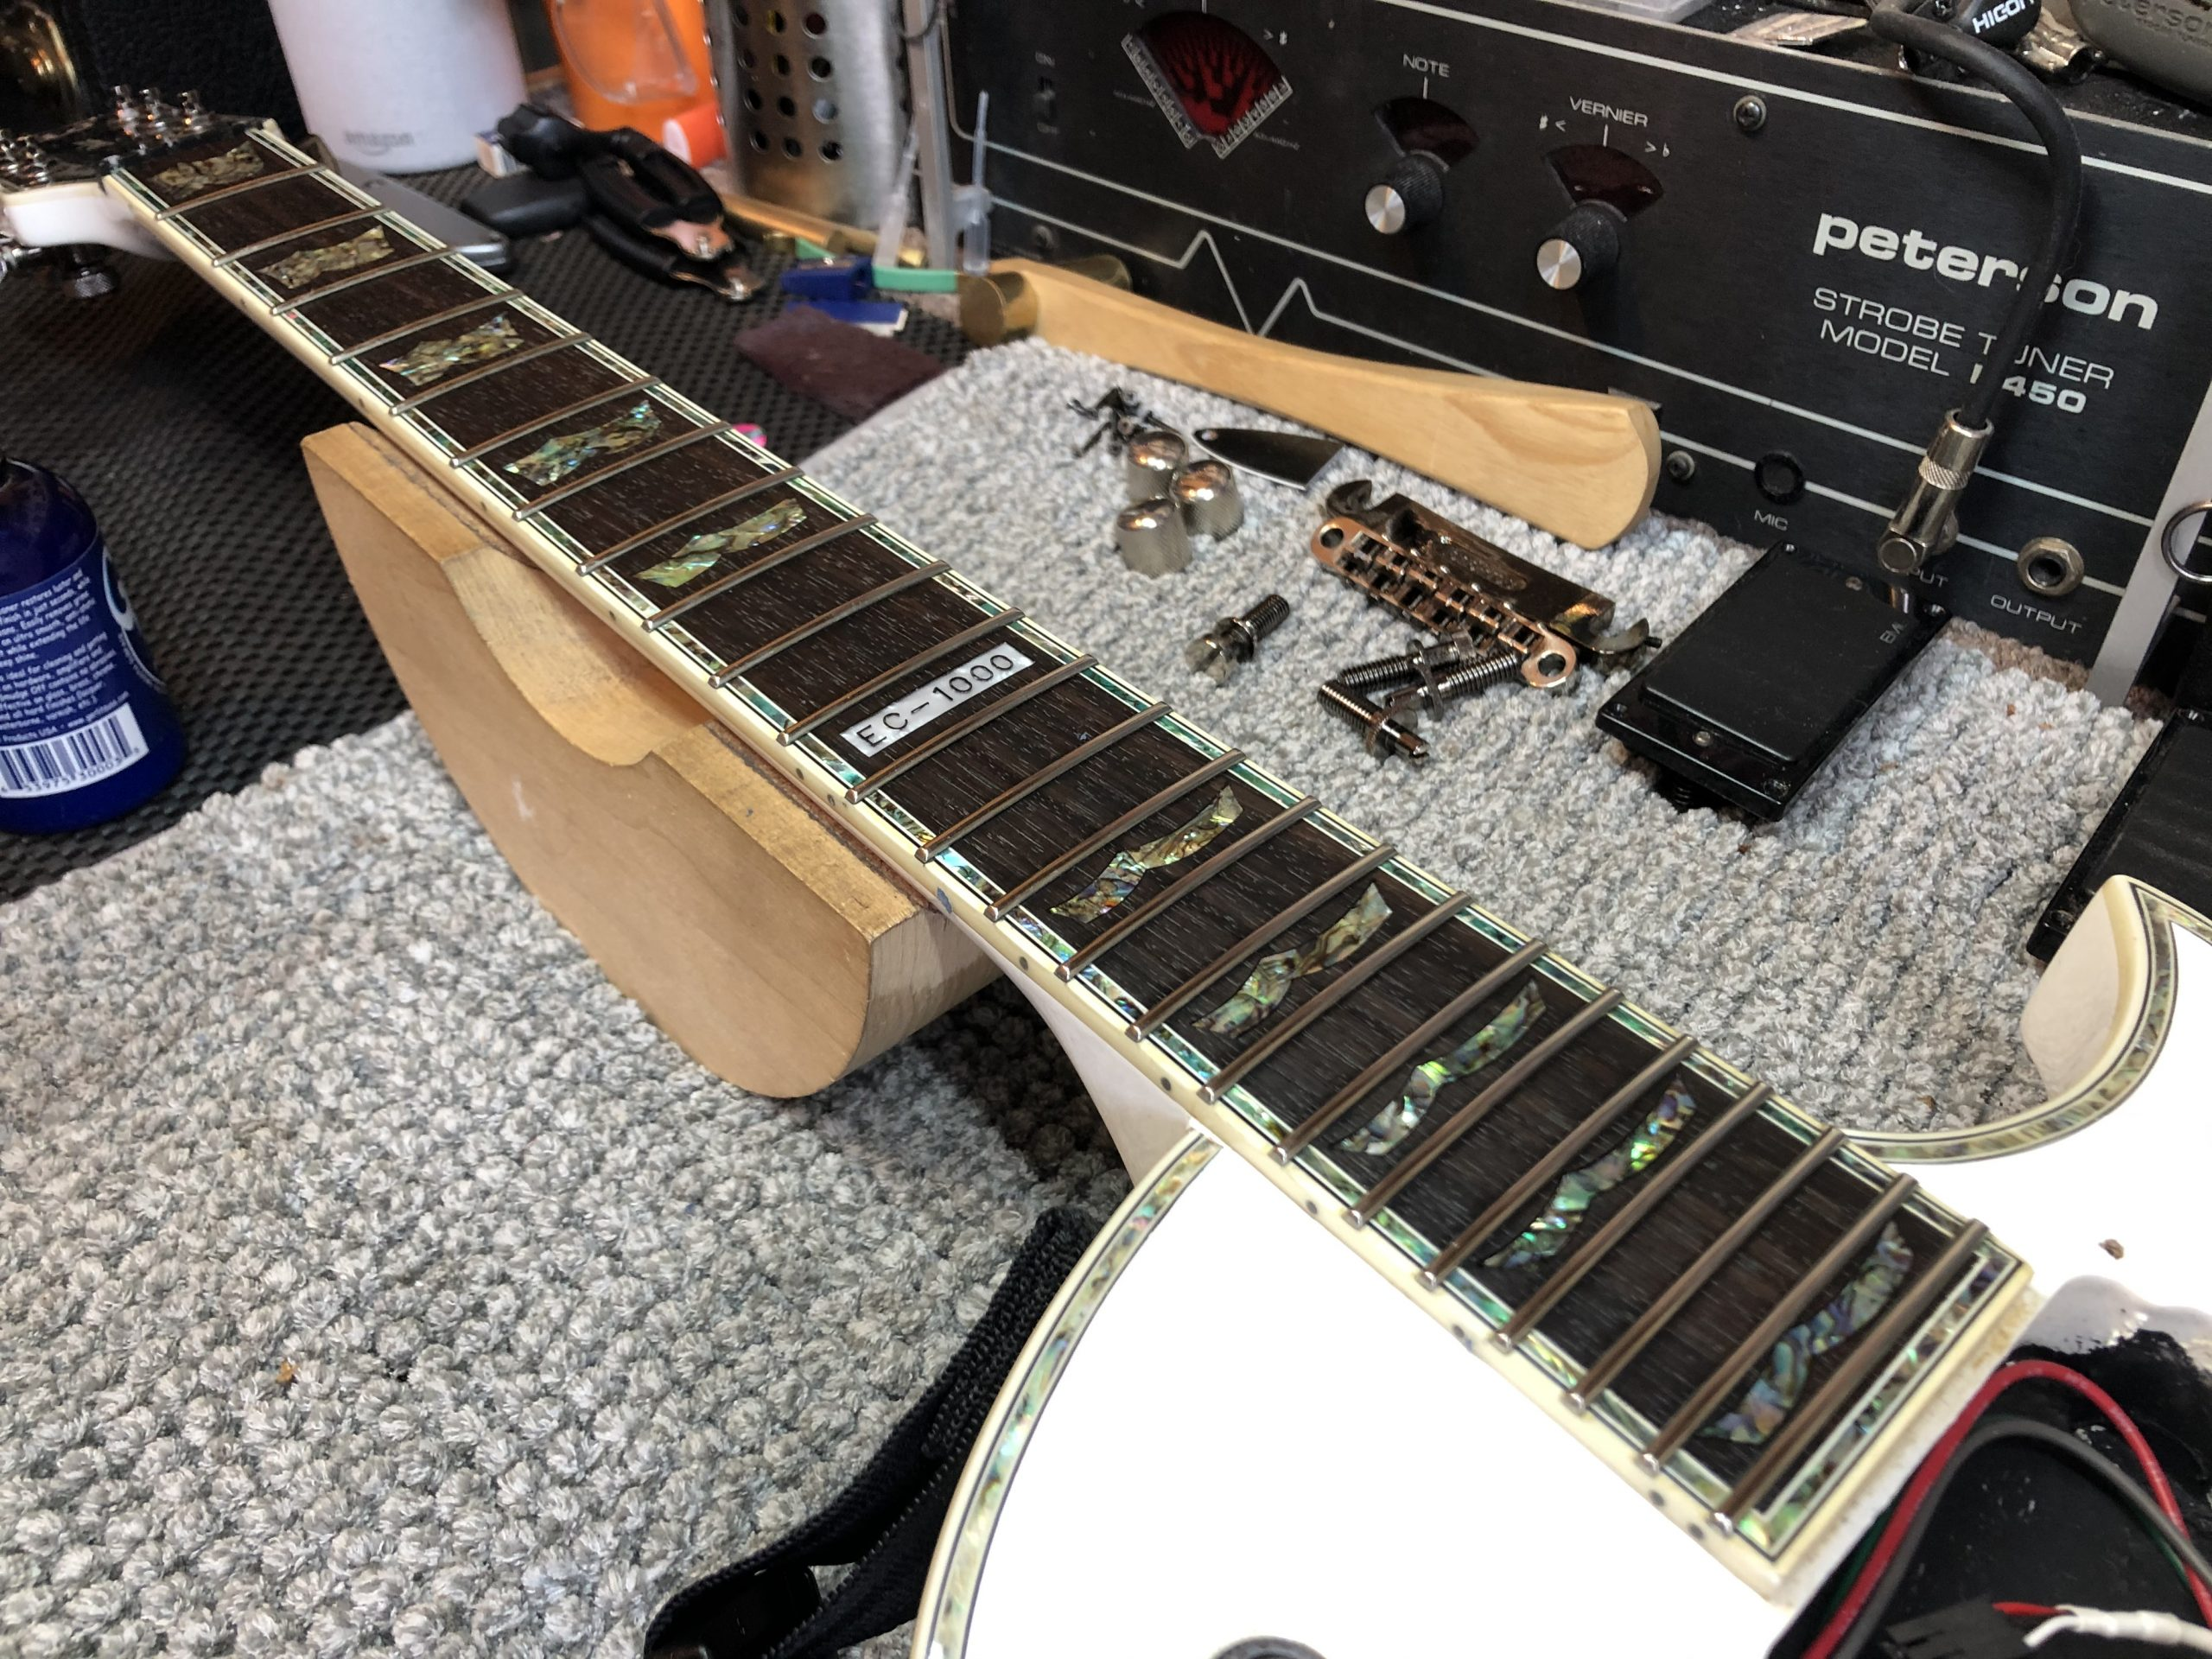 Conditioned fretboard